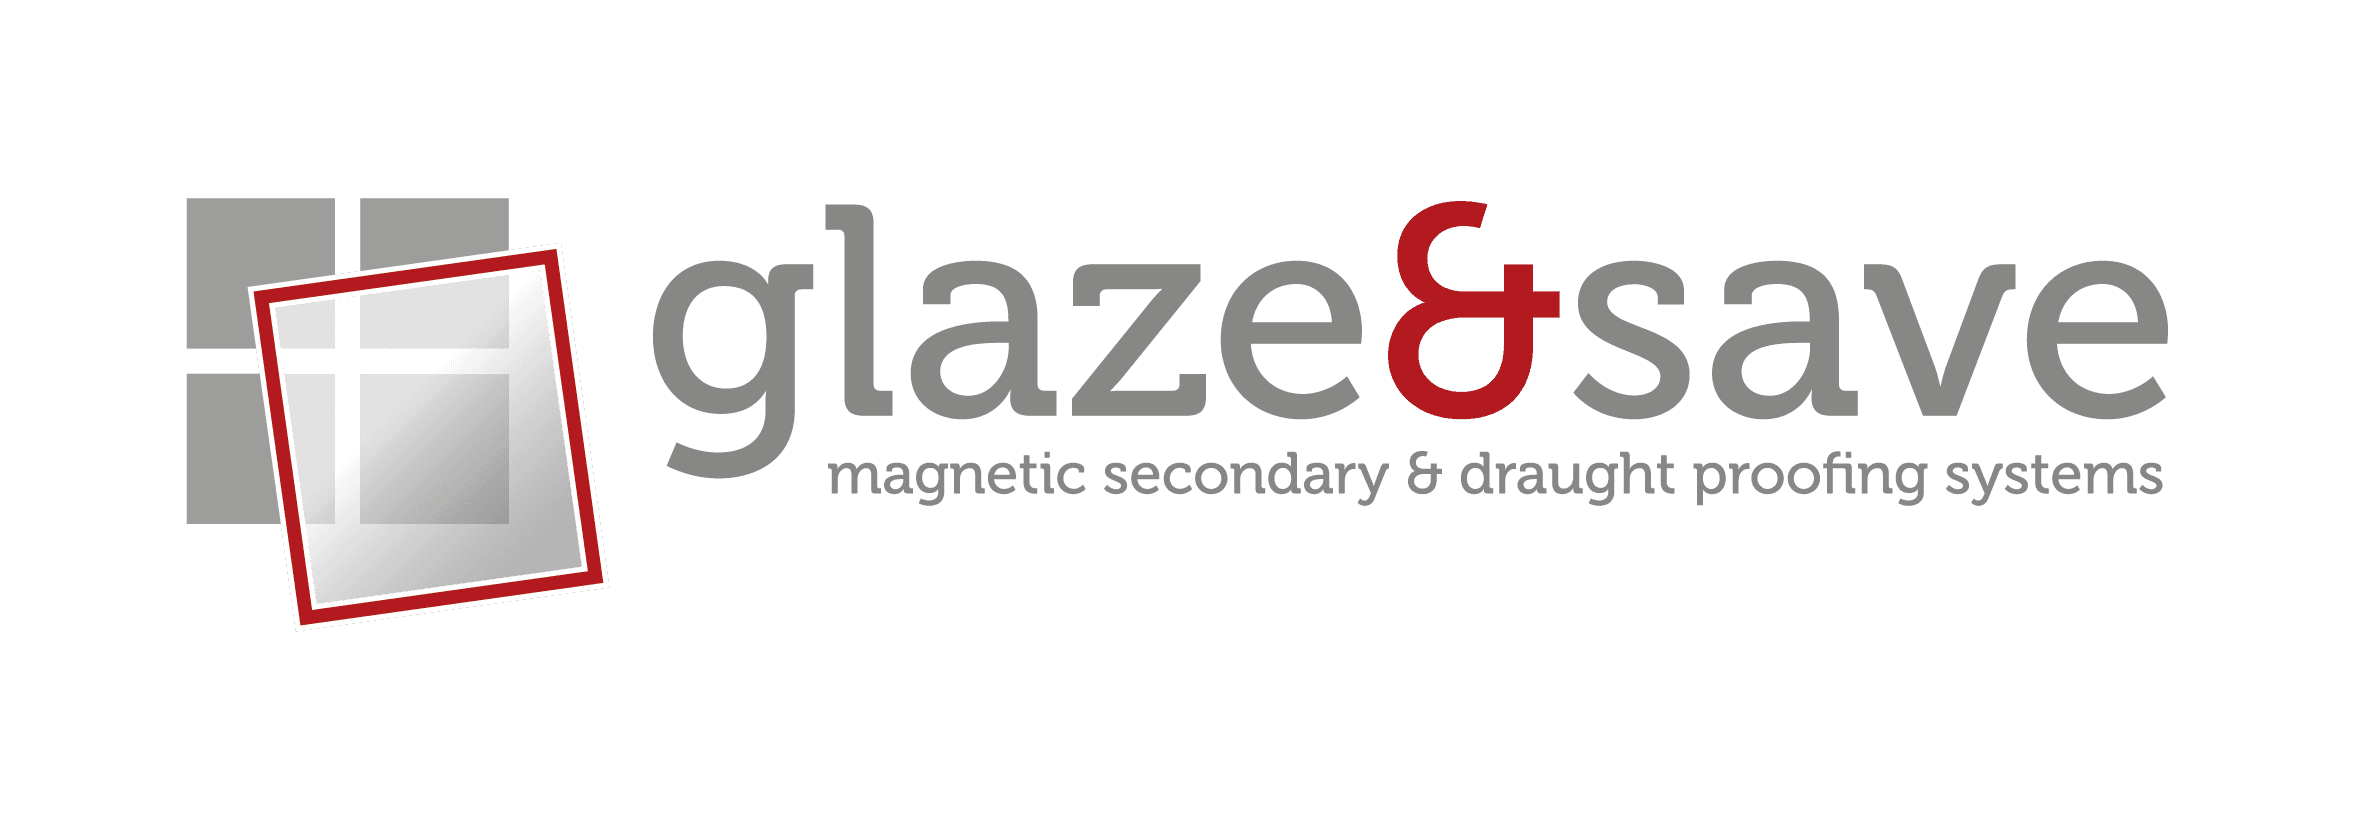 Glaze and save logo